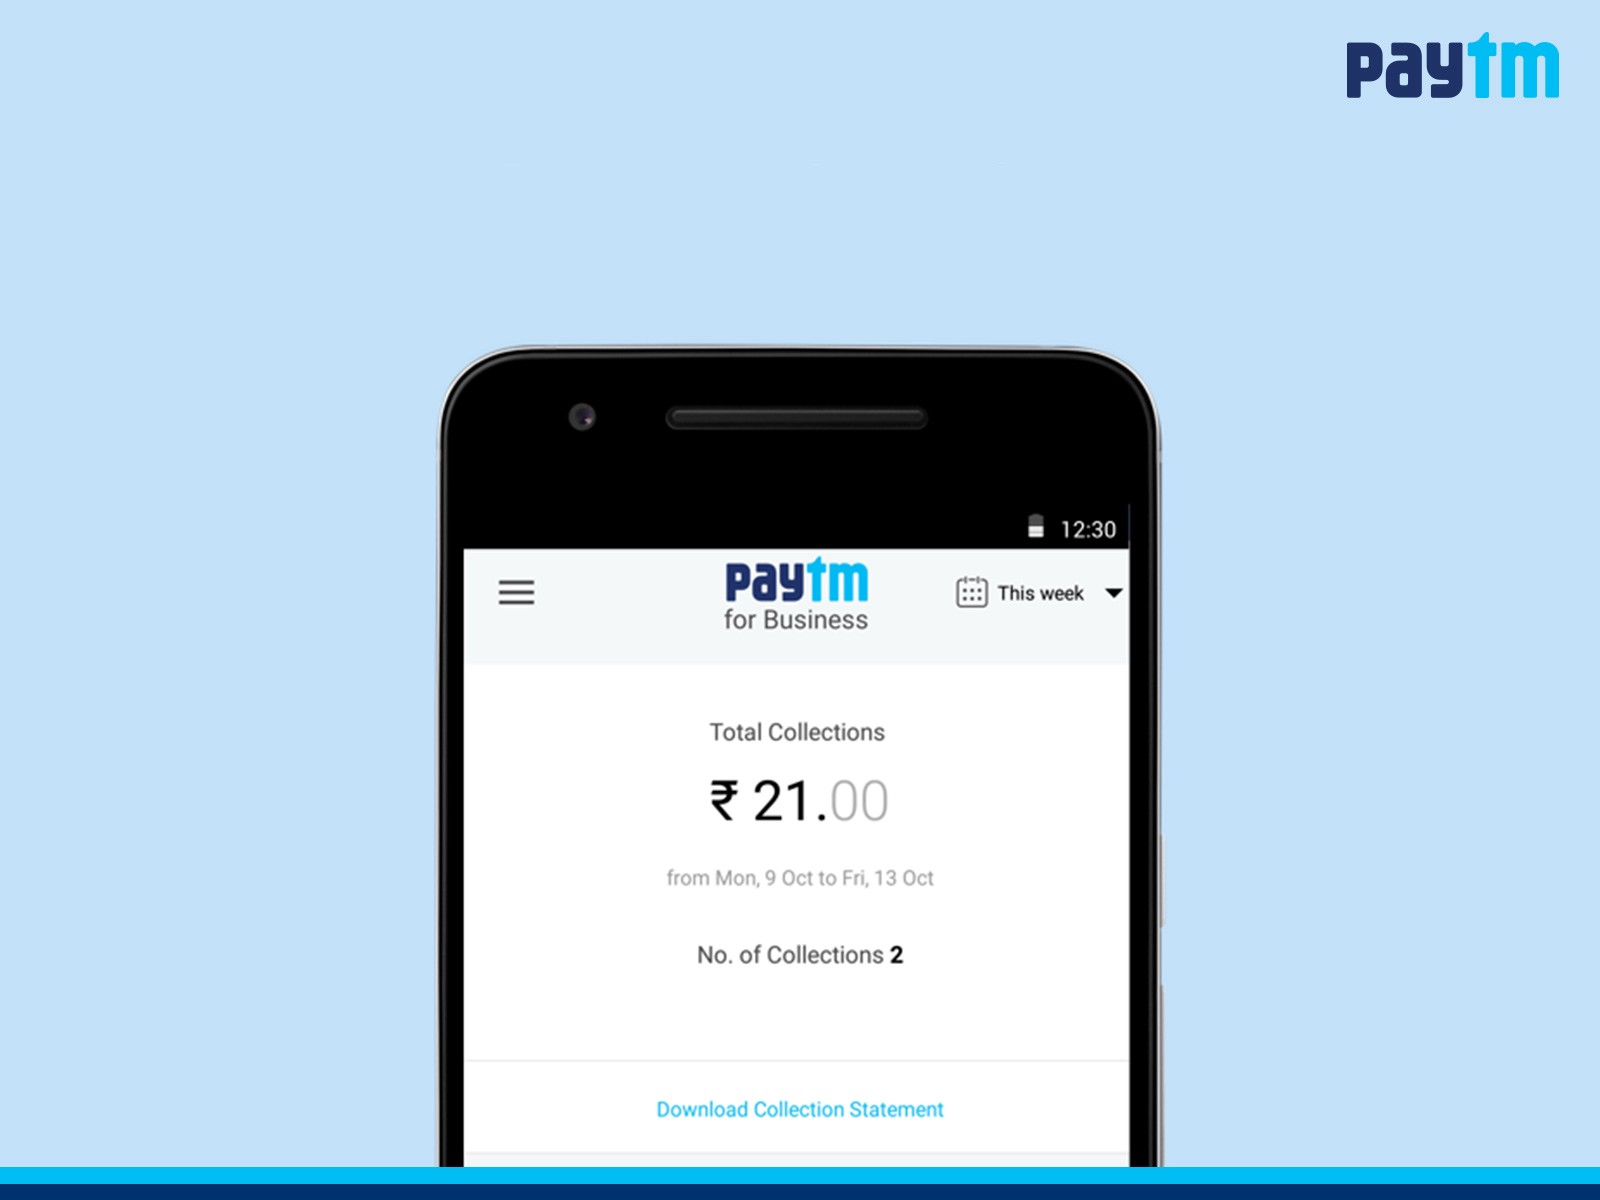 Introducing The Paytm For Business App Paytm Blog